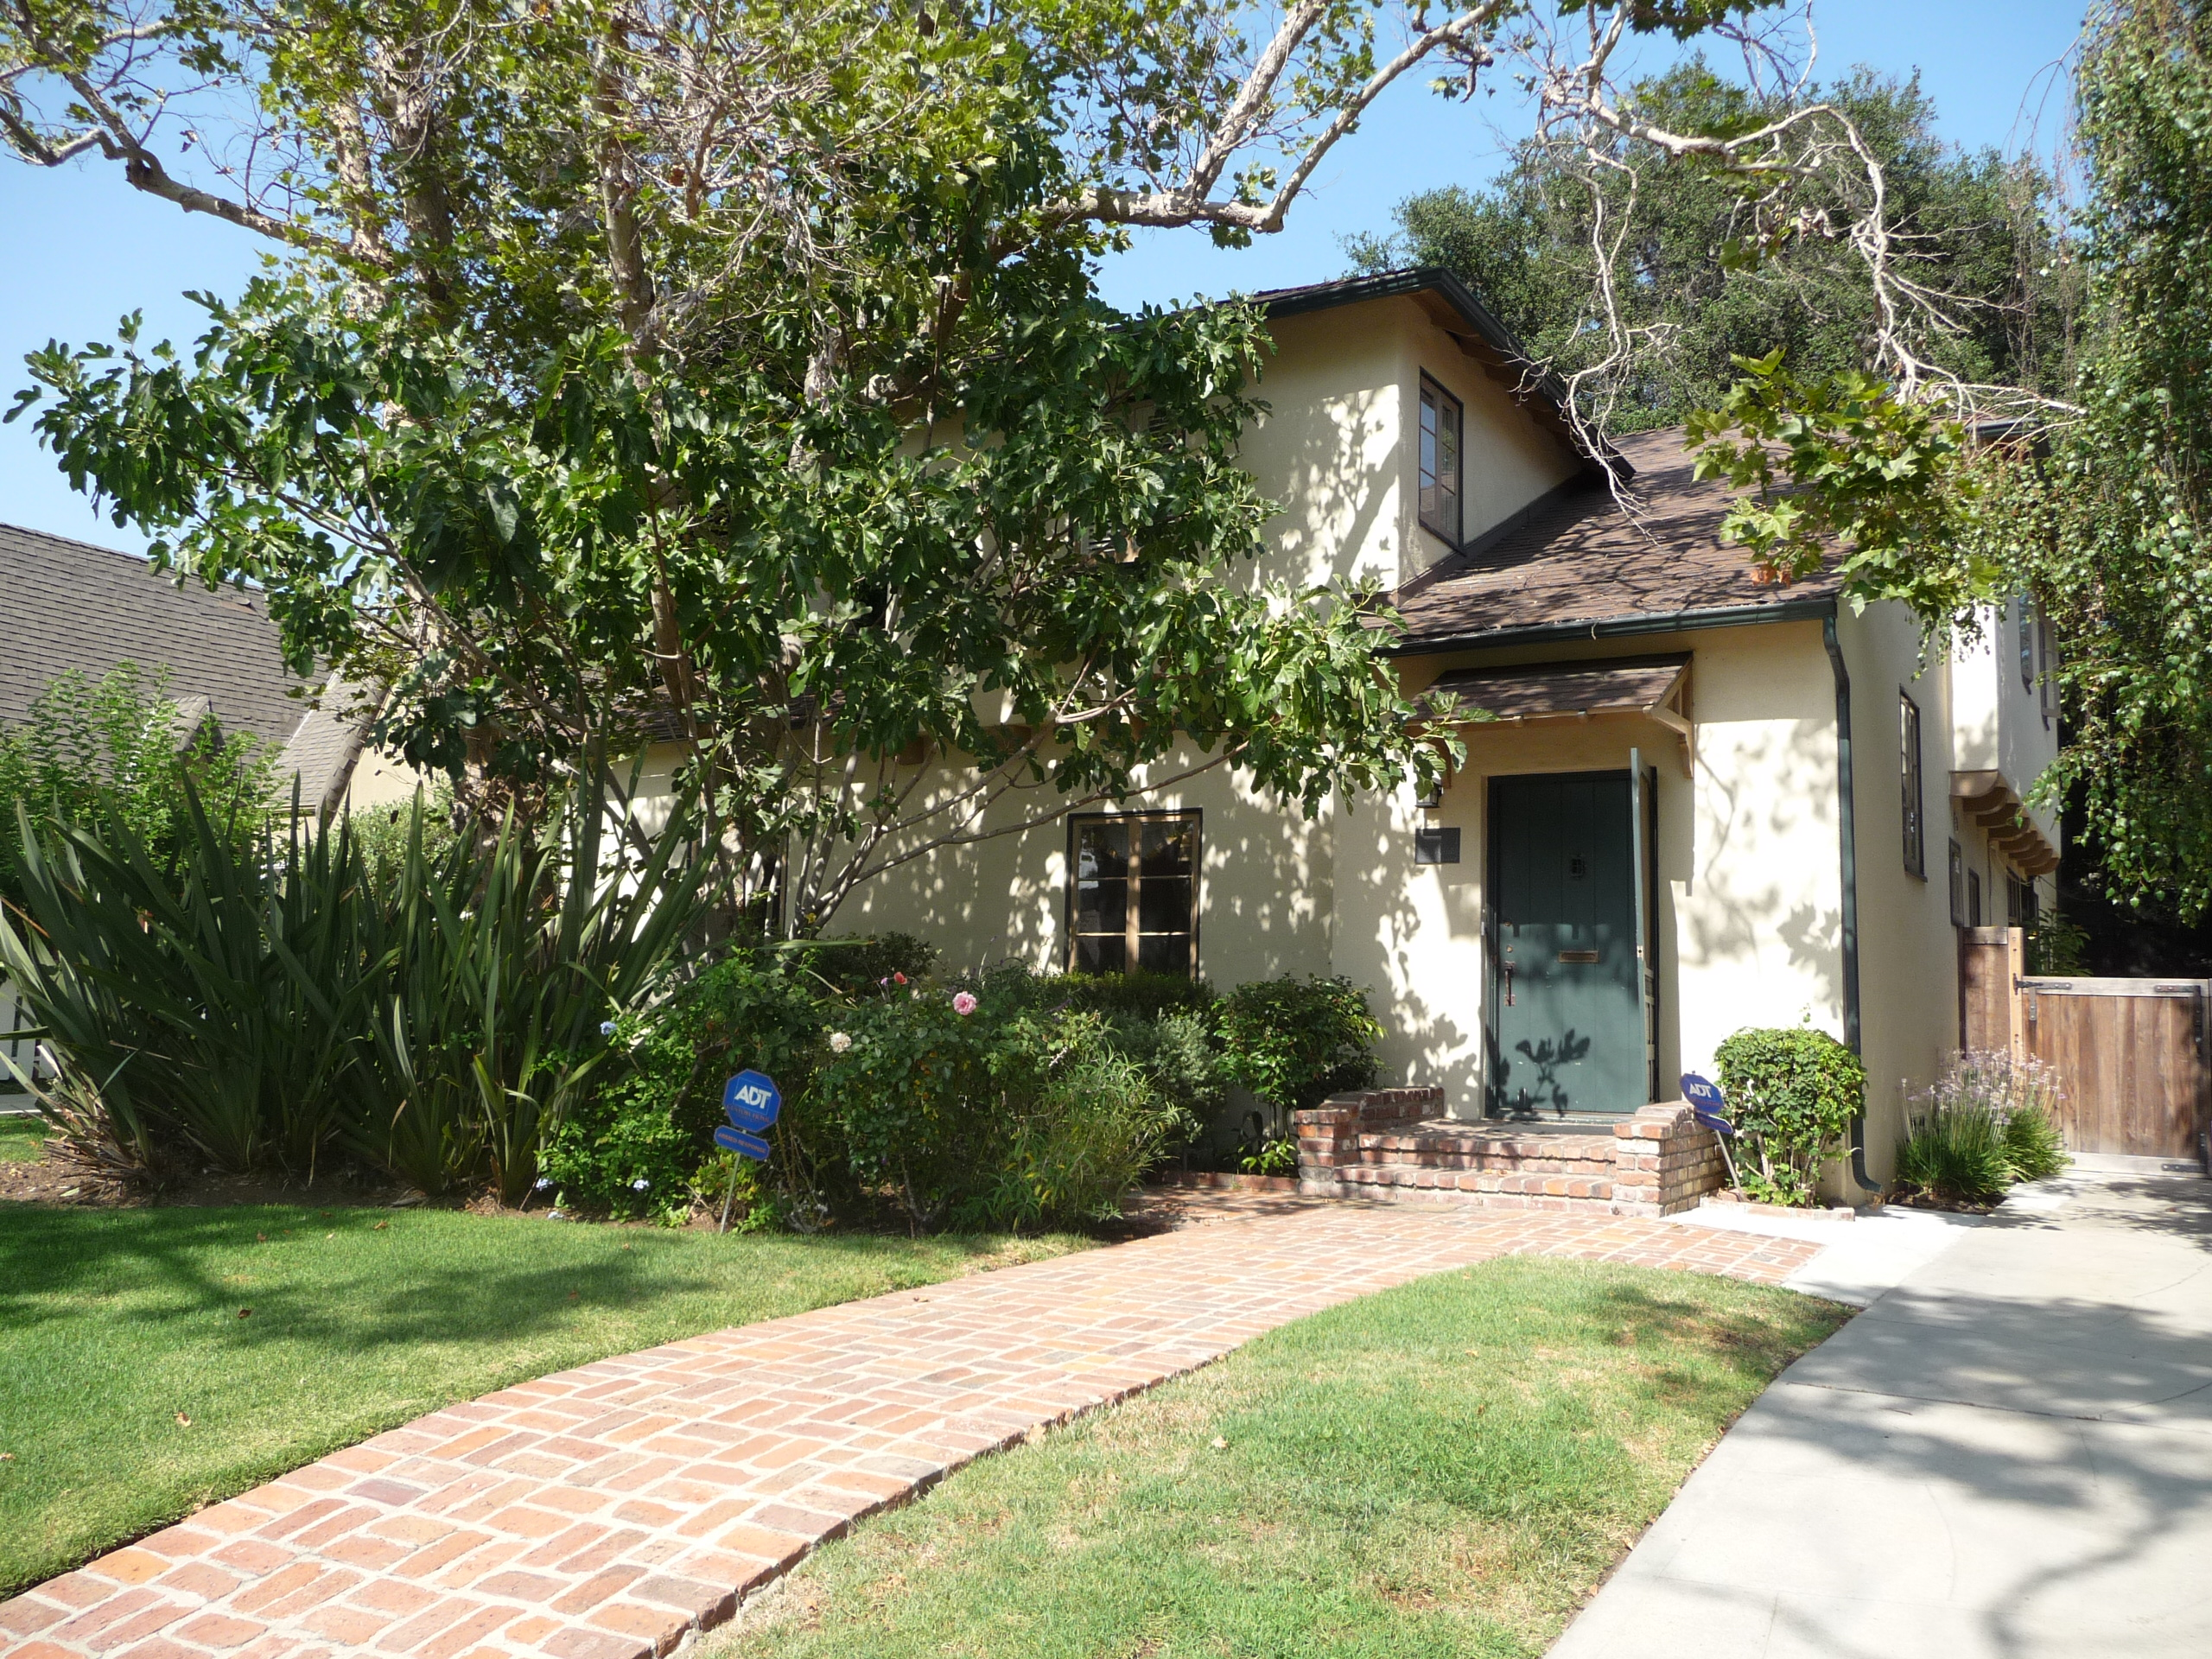 338 N CITRUS AVE - PHOTO